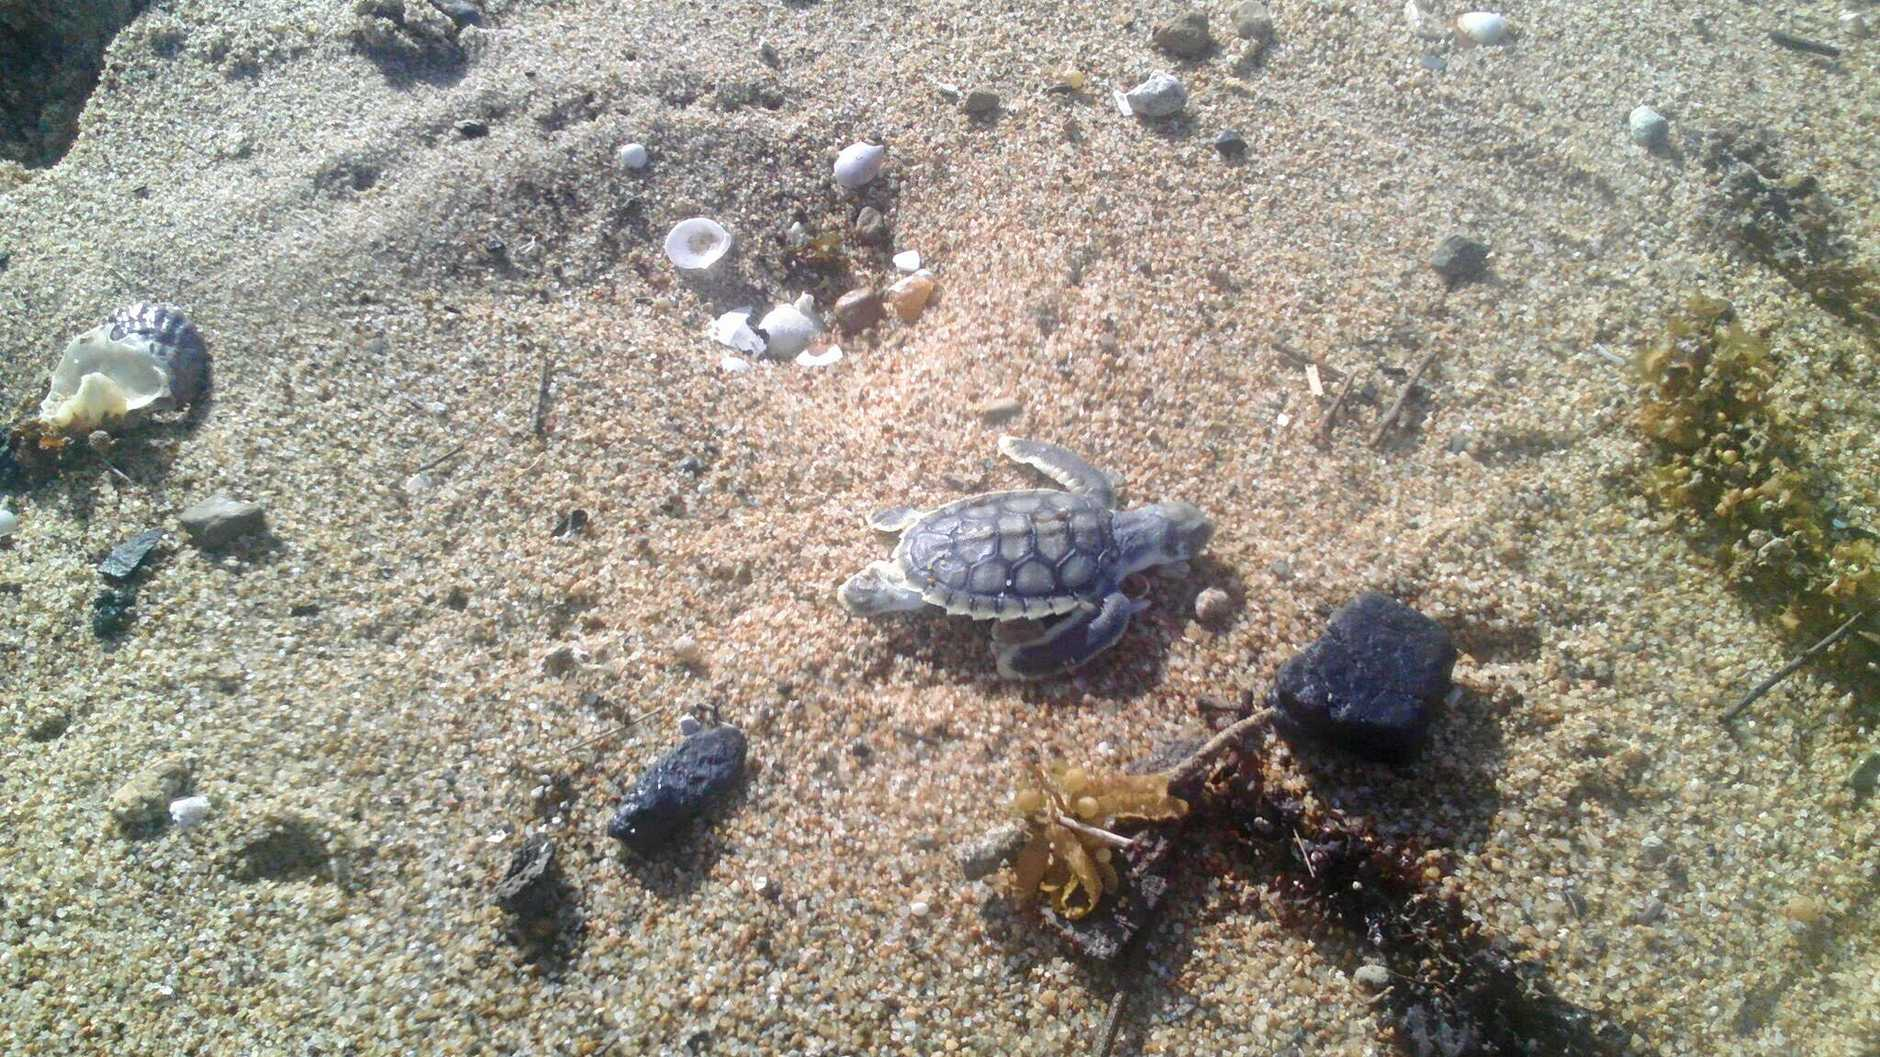 Environmental advocate Lance Payne sent this image in to WWF Australia of a turtle hatchling beside a lump of coal at East Point Beach, Mackay.